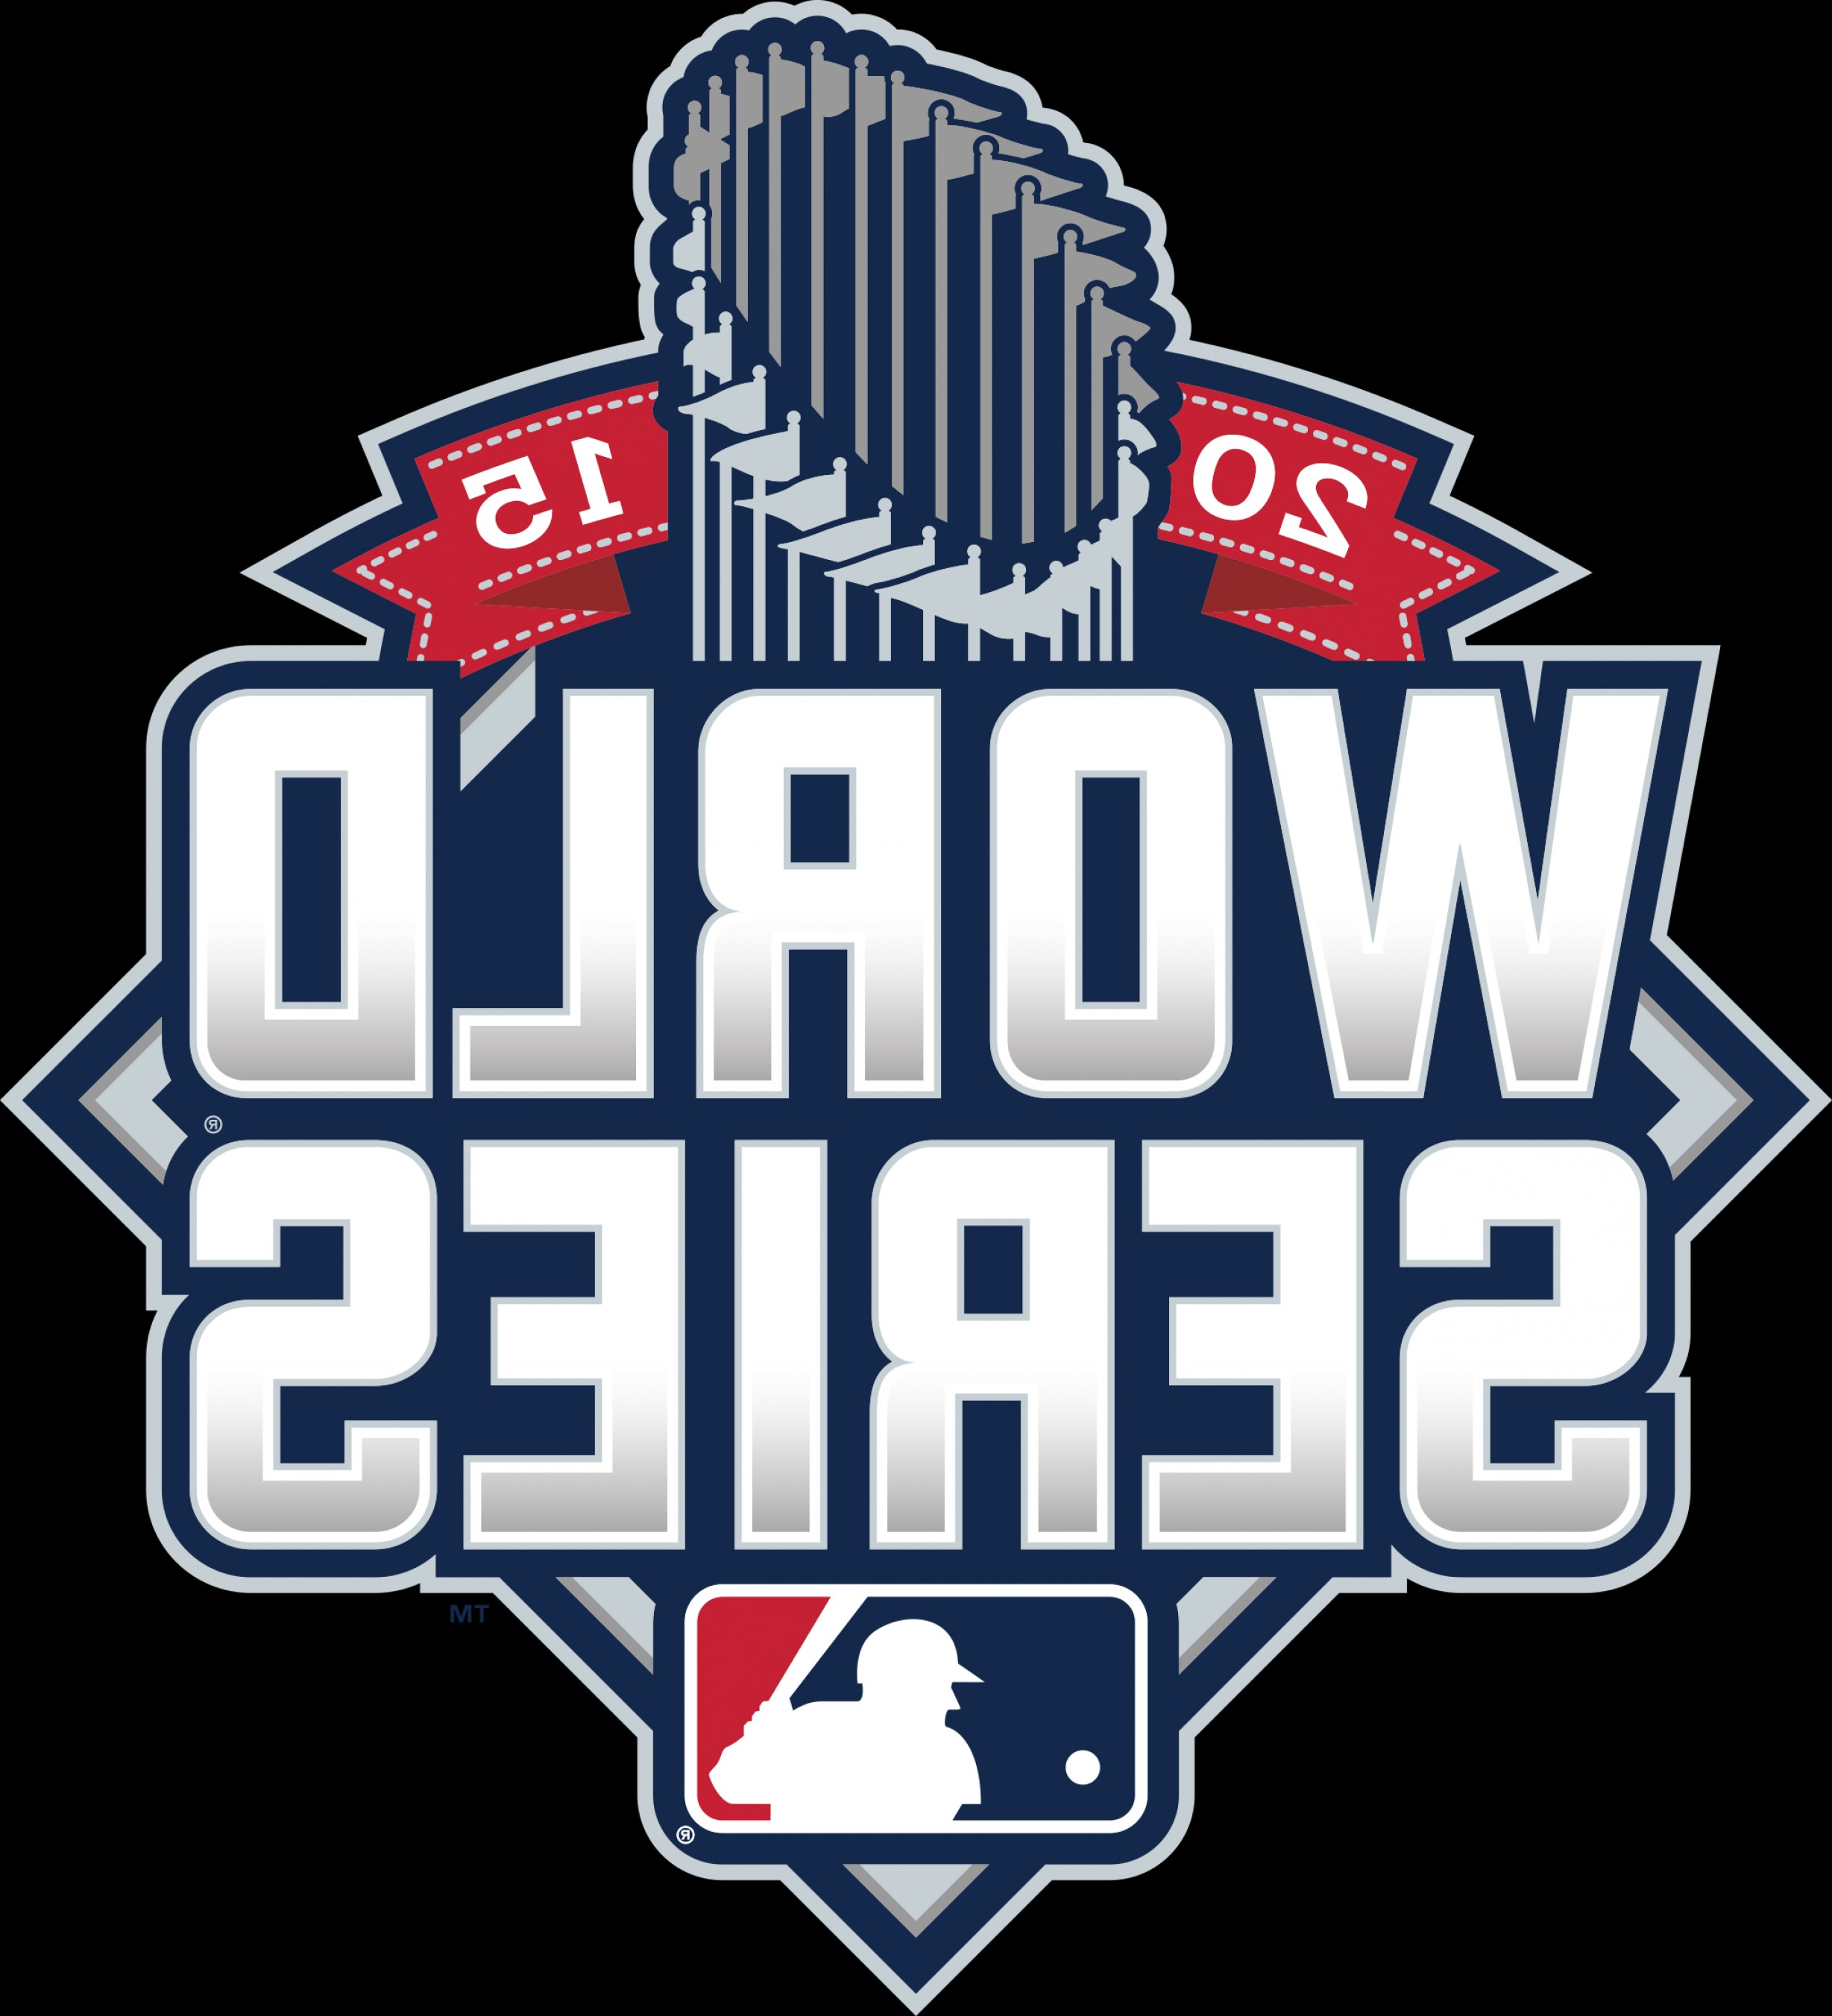 National League Baseball Logo Vector: The Royals Know They Have Their Work Cut Out For Them In The World Series